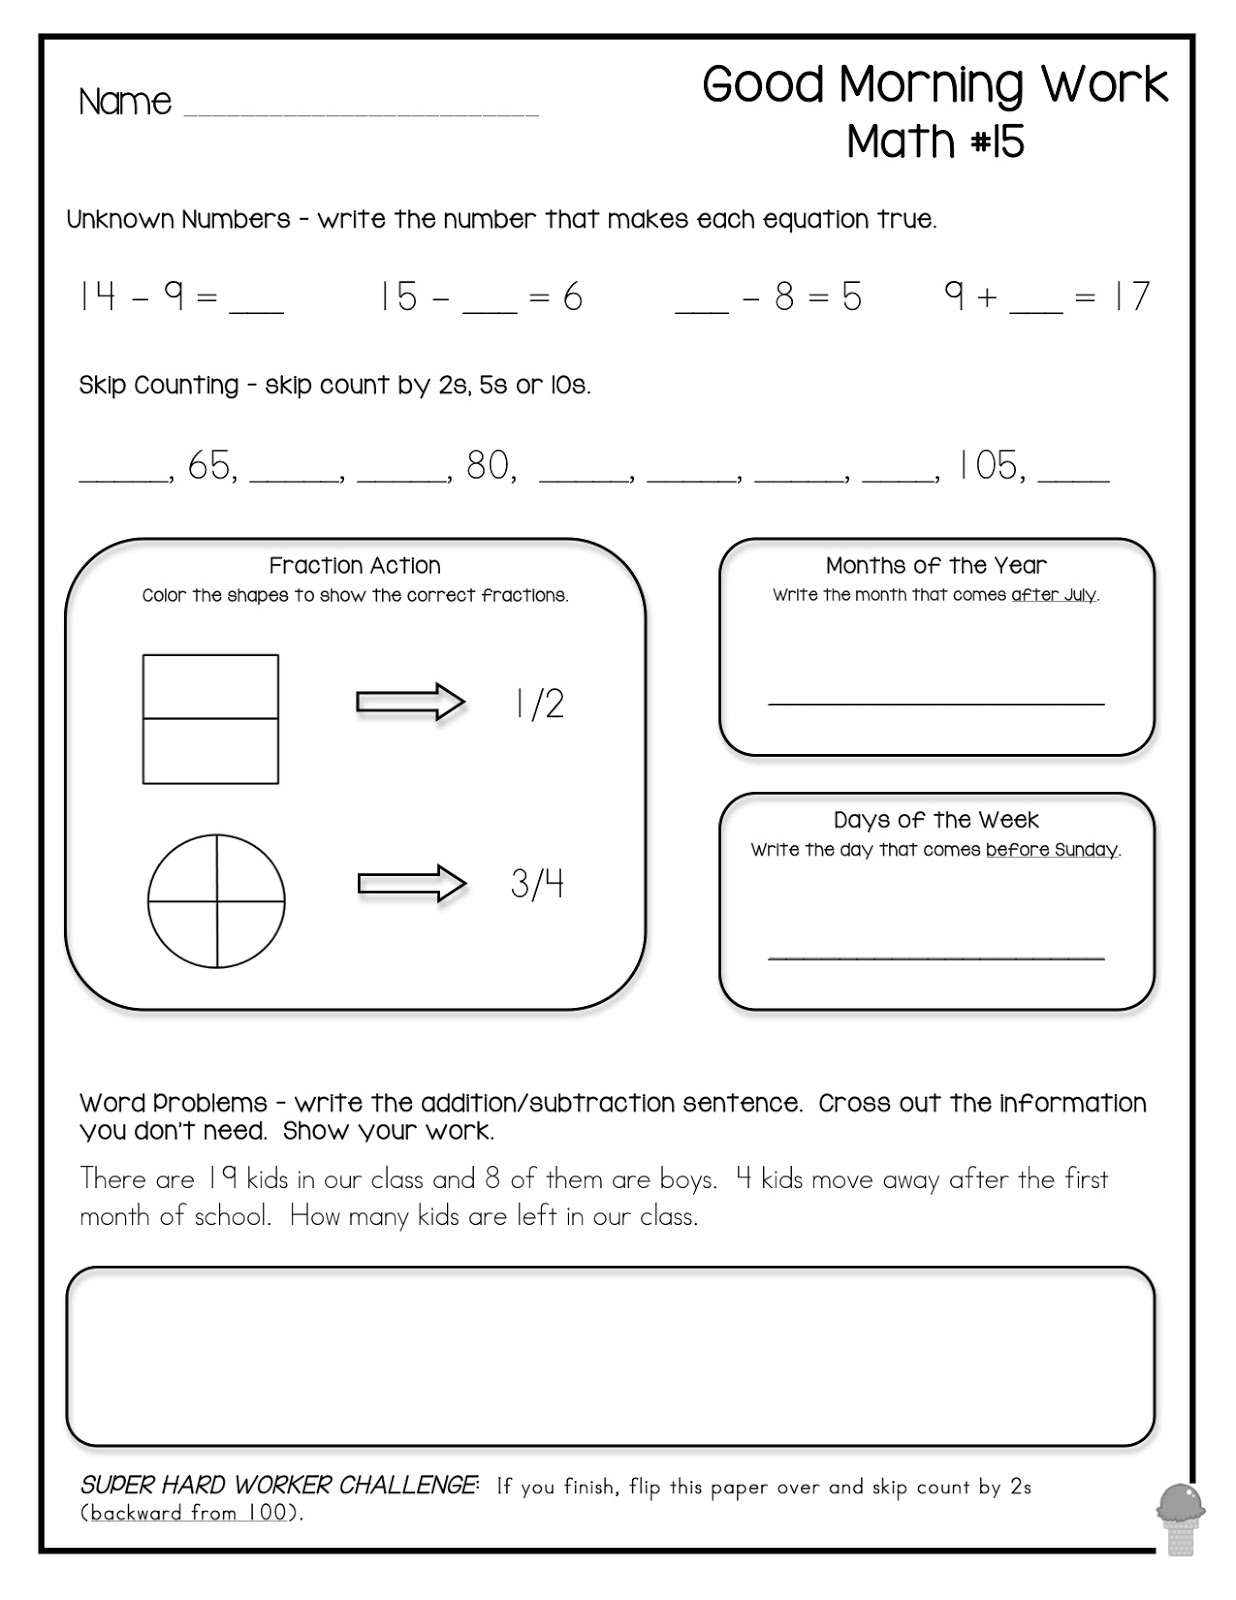 Friends Worksheet For Second